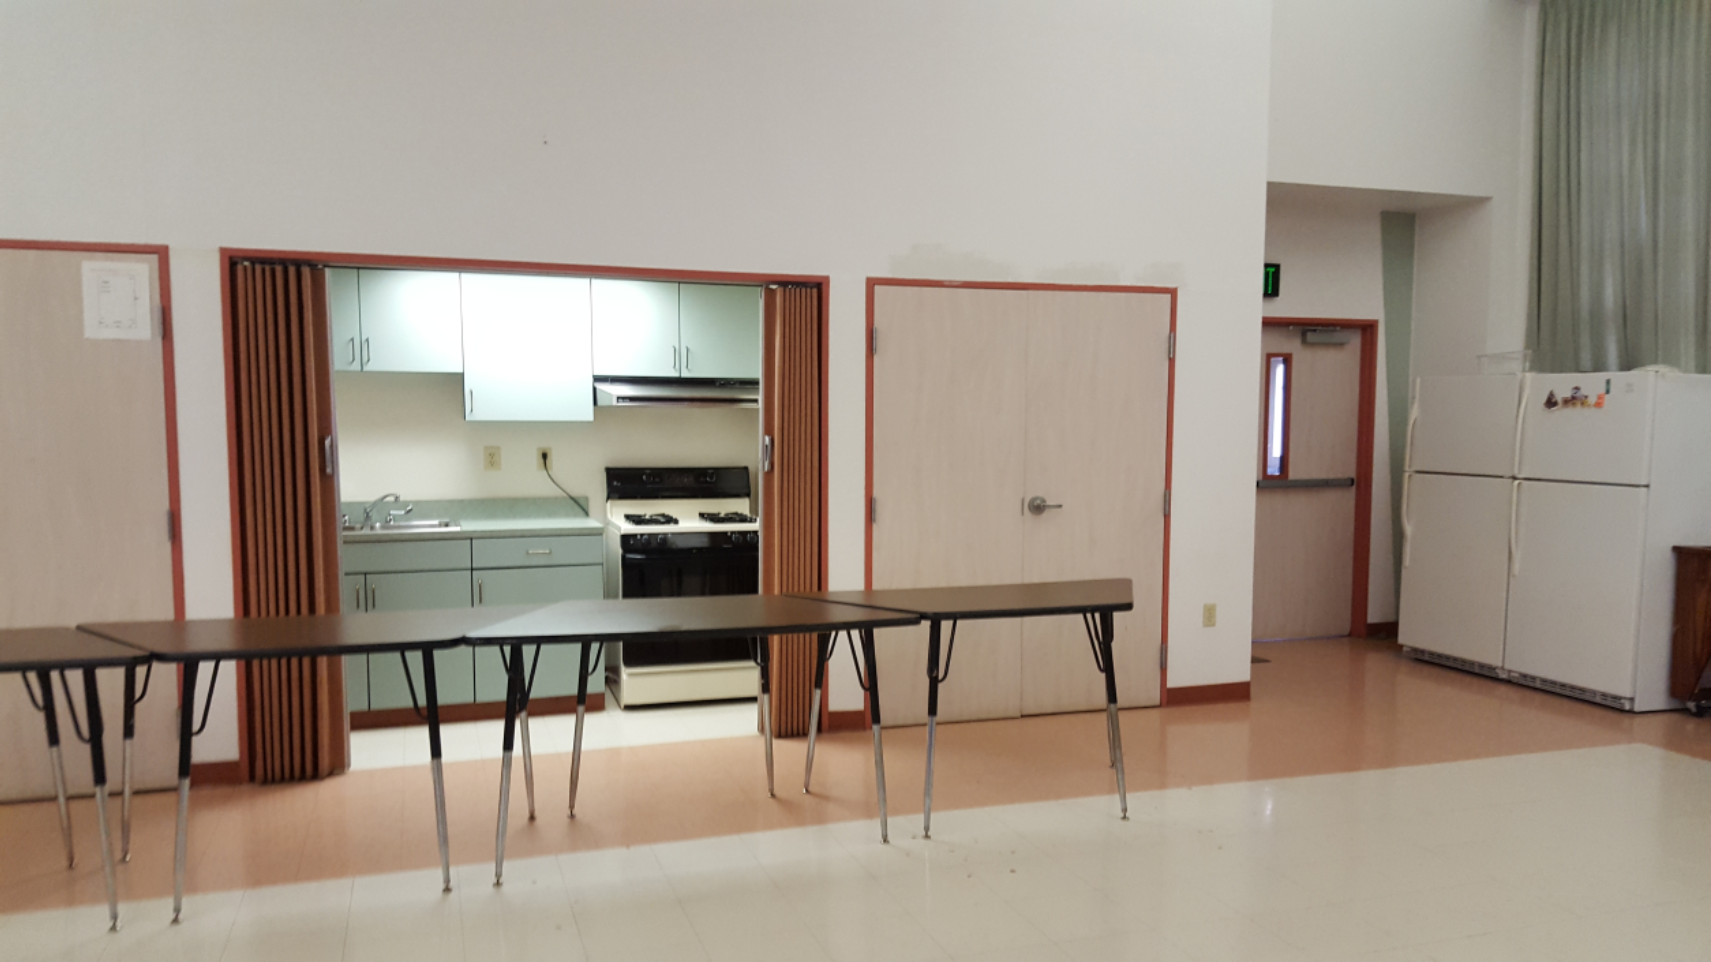 Kitchenette.png